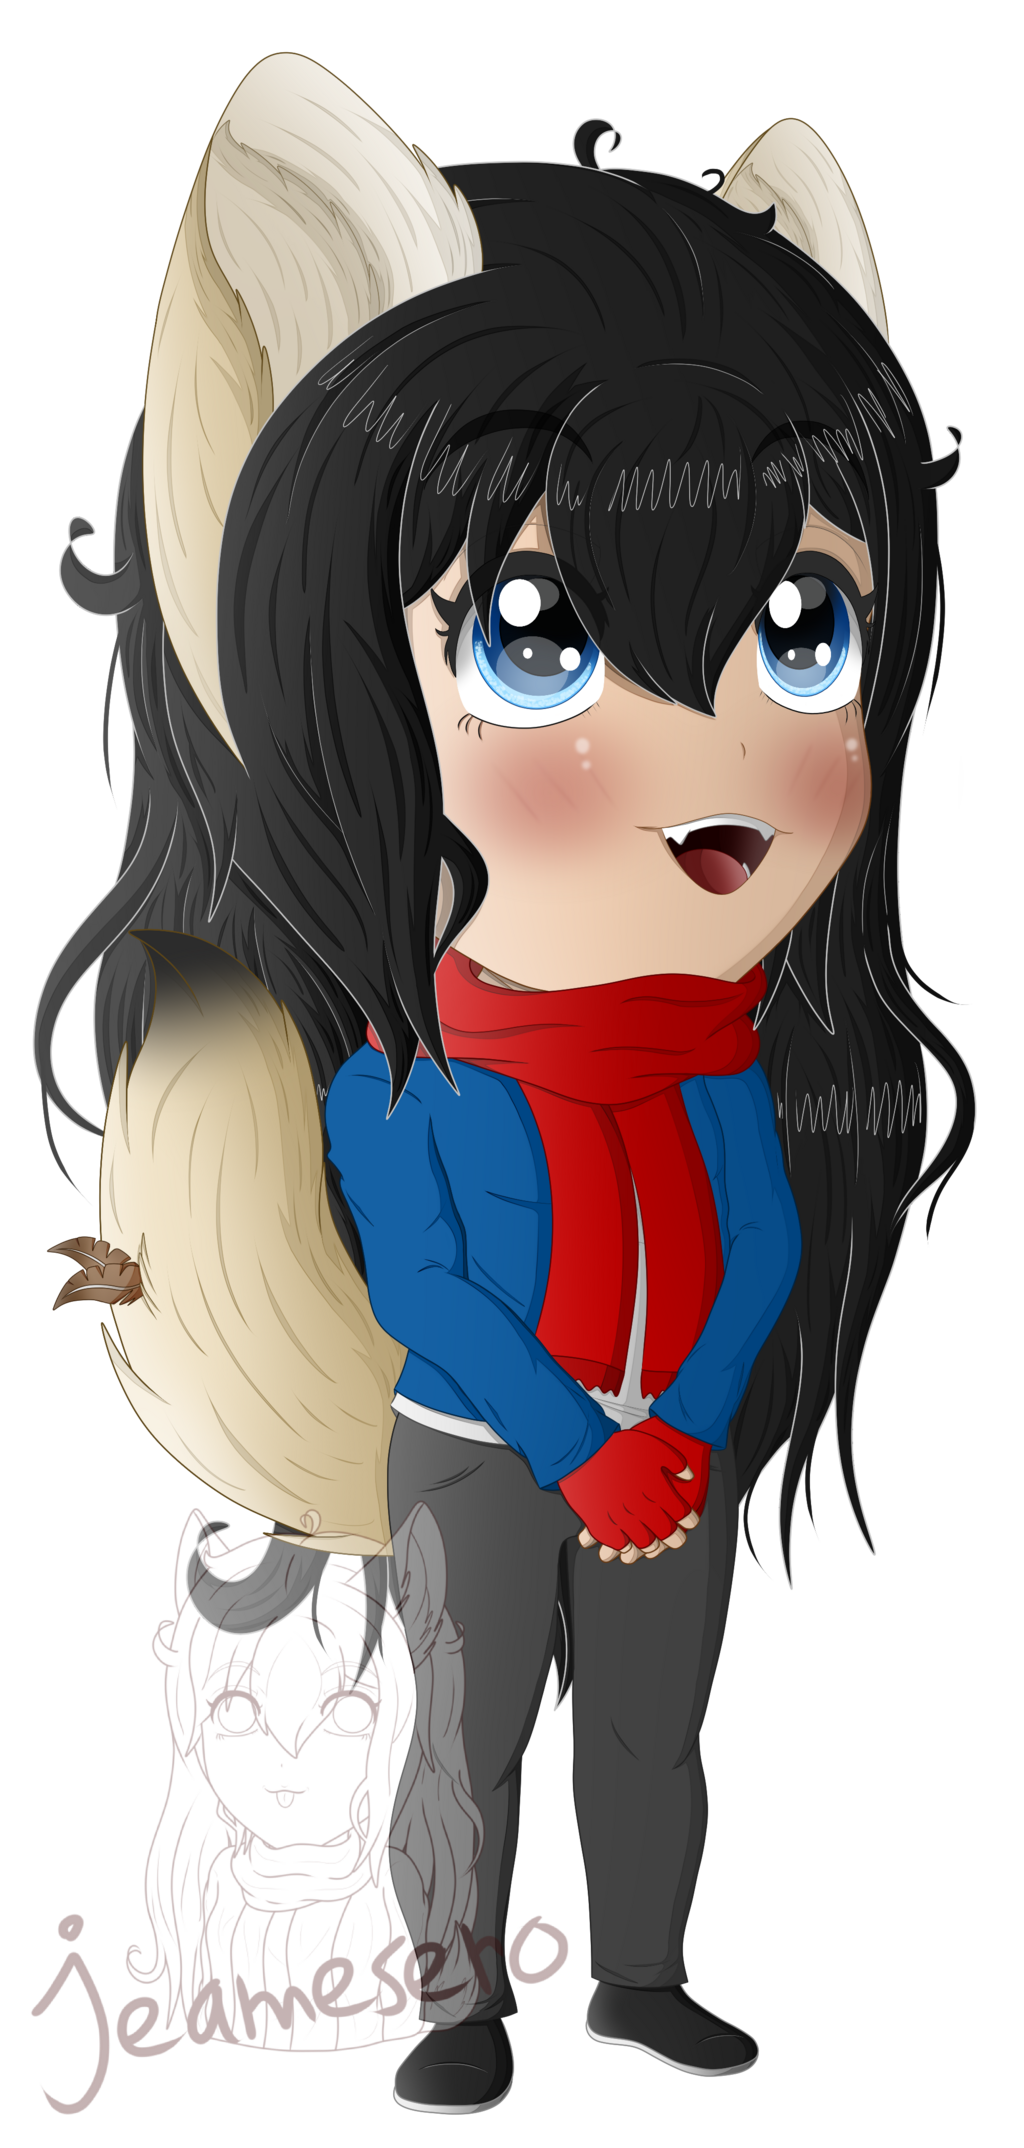 Colored and shaded chibi 2.0